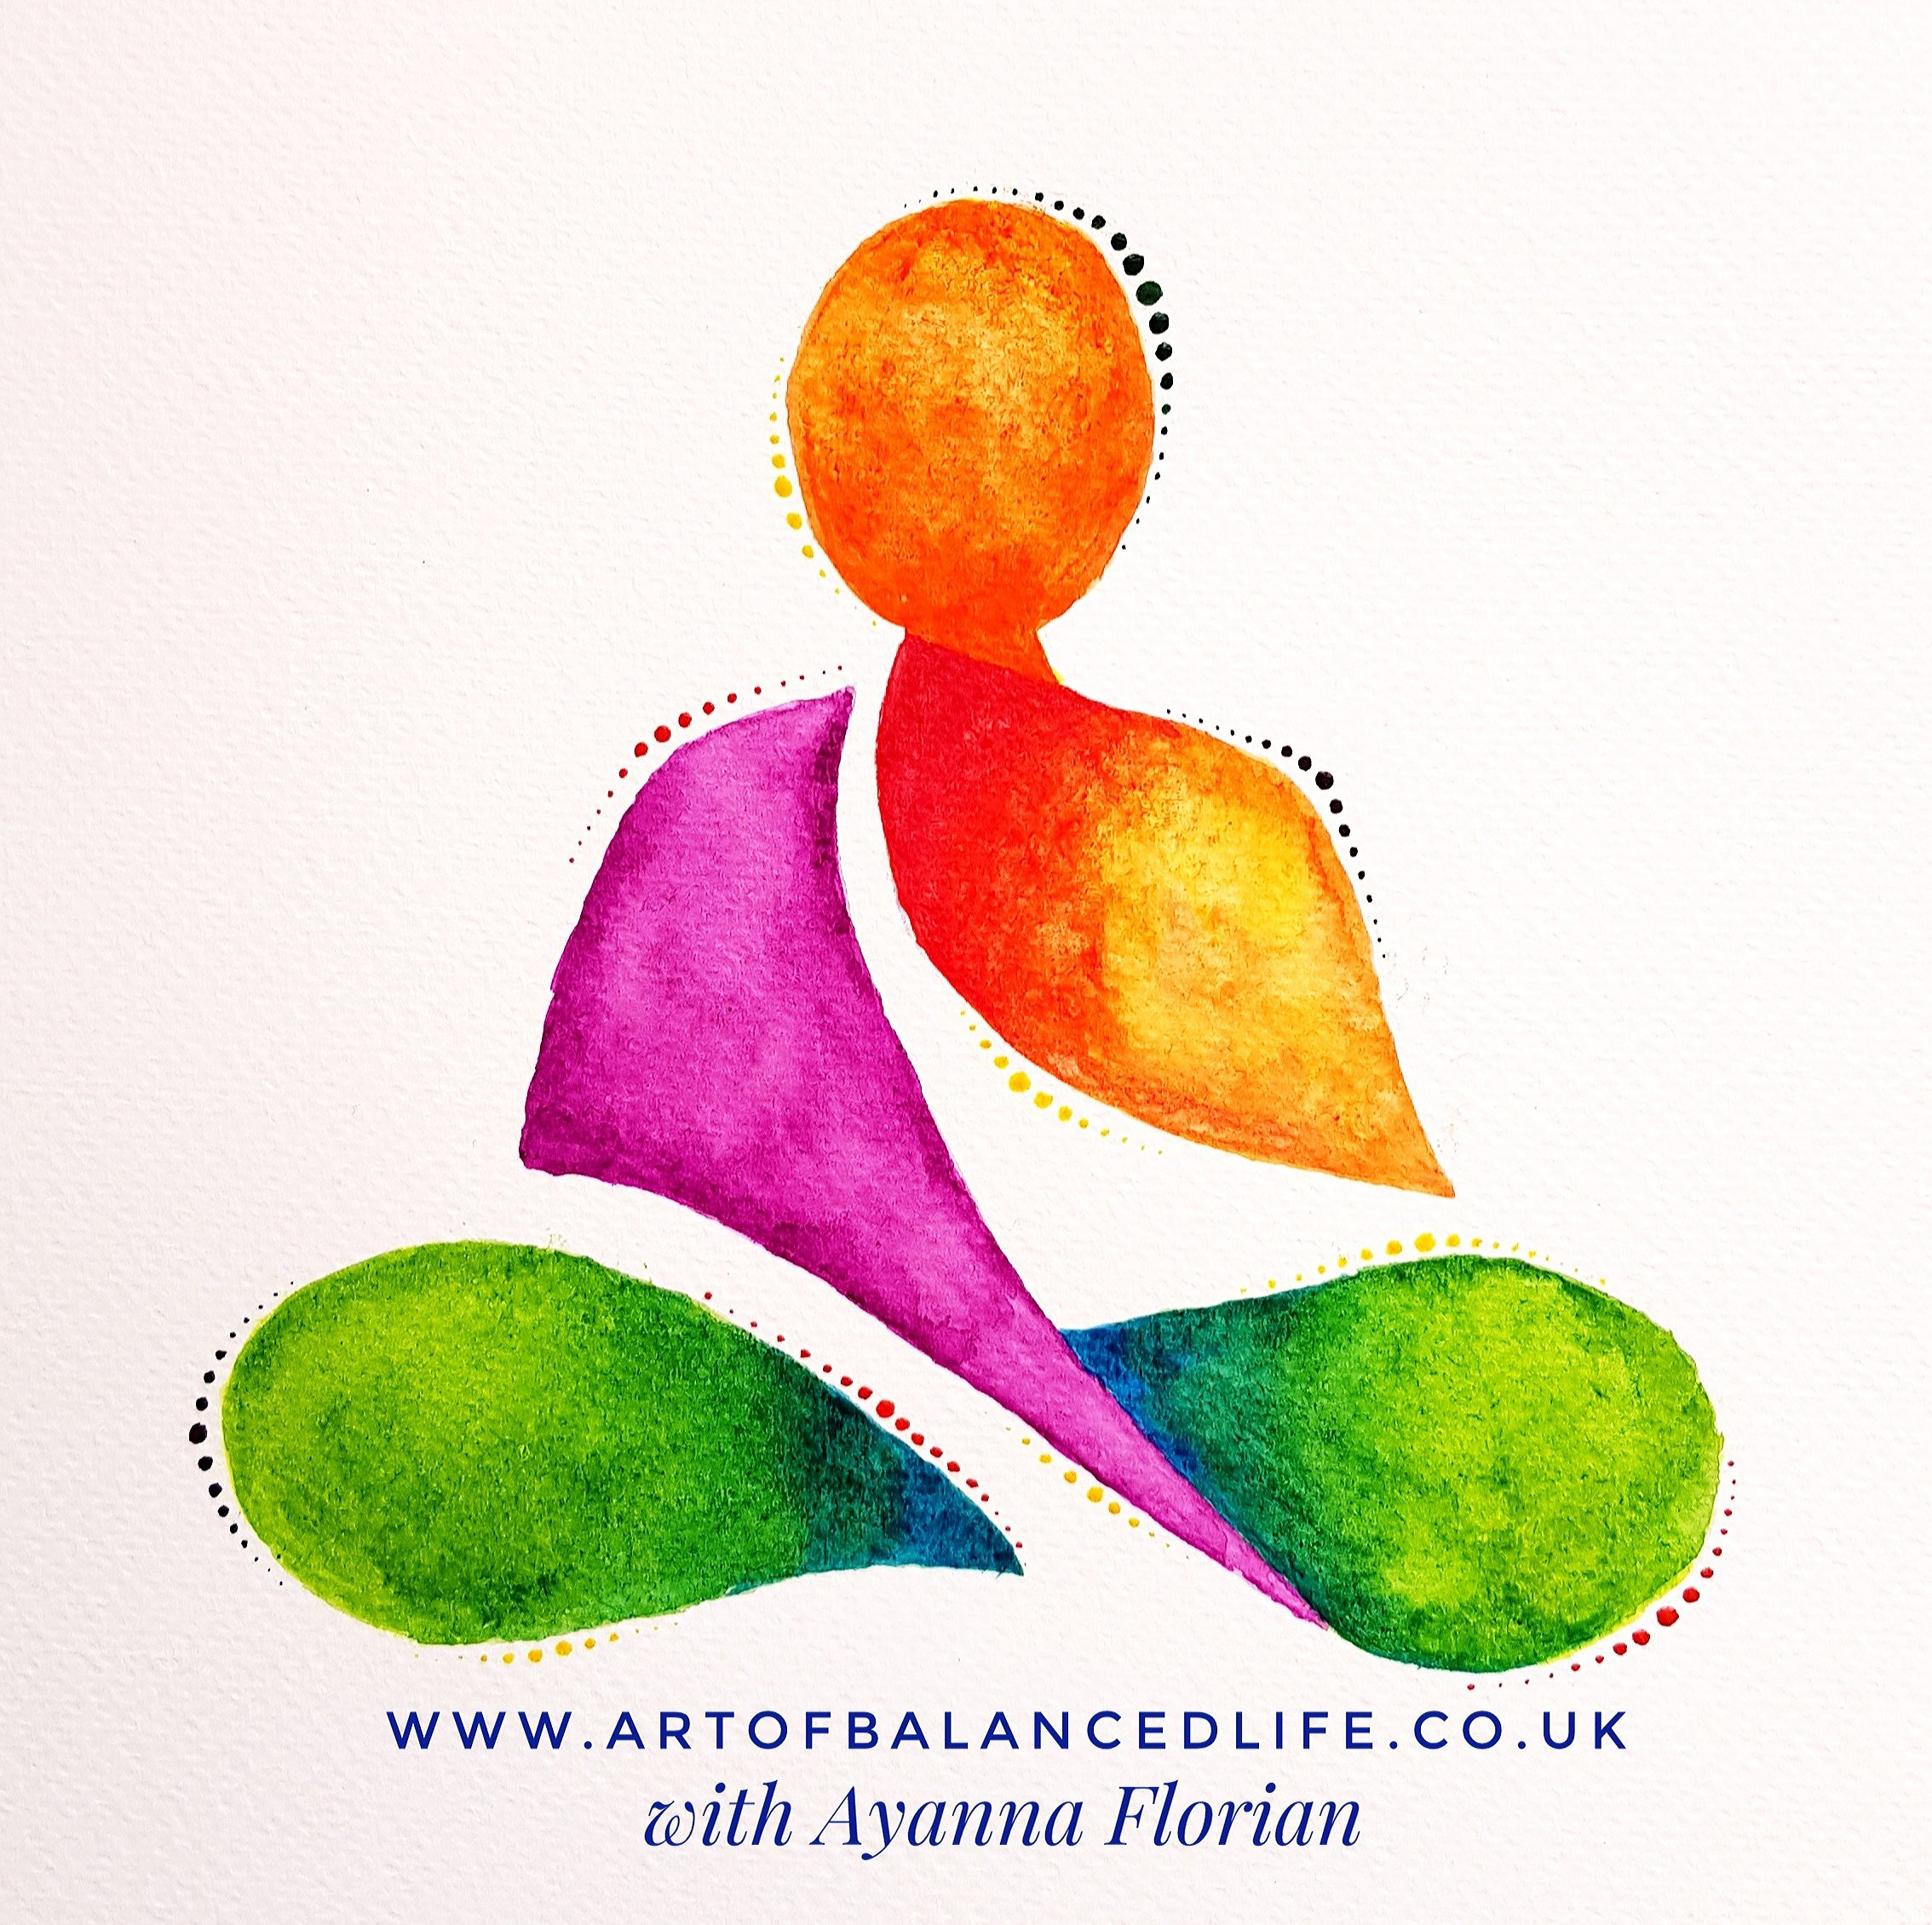 Art of Balanced Life – We built uo the website, please go to facebook page